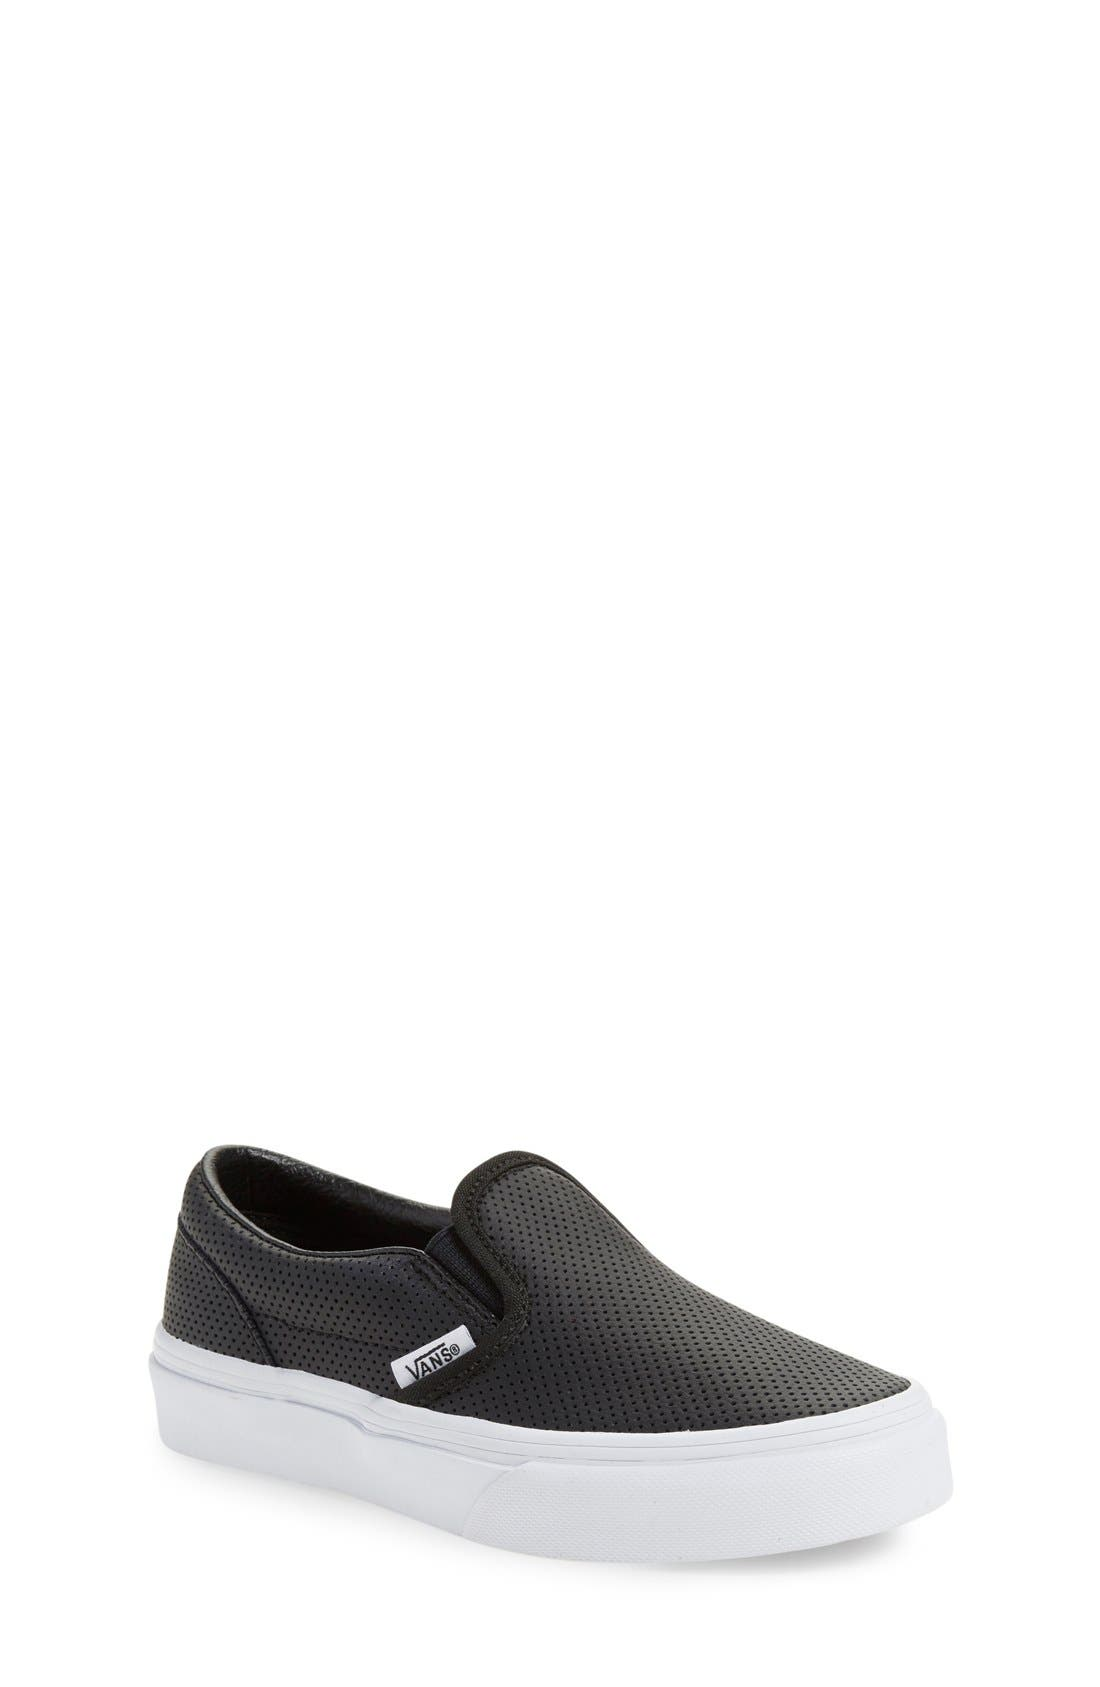 Tumble White Slip-On Style Baby Booties - 3 to 9 Months discount outlet store tumblr cheap online deals sale online sale wide range of YI5oc